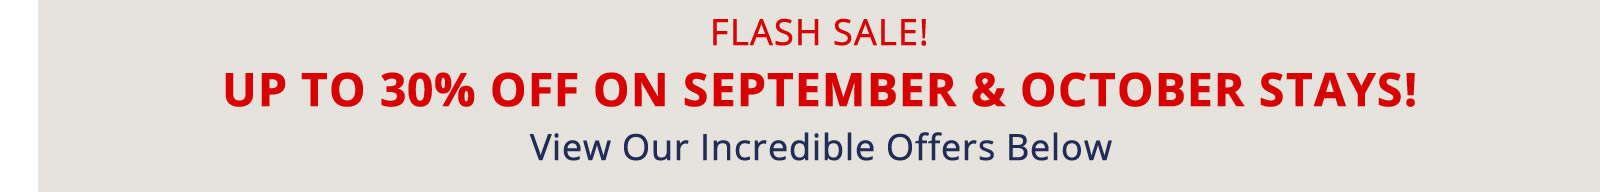 FLASH SALE! UP TO 50% OFF ON SEPTEMBER and OCTOBER STAYS!